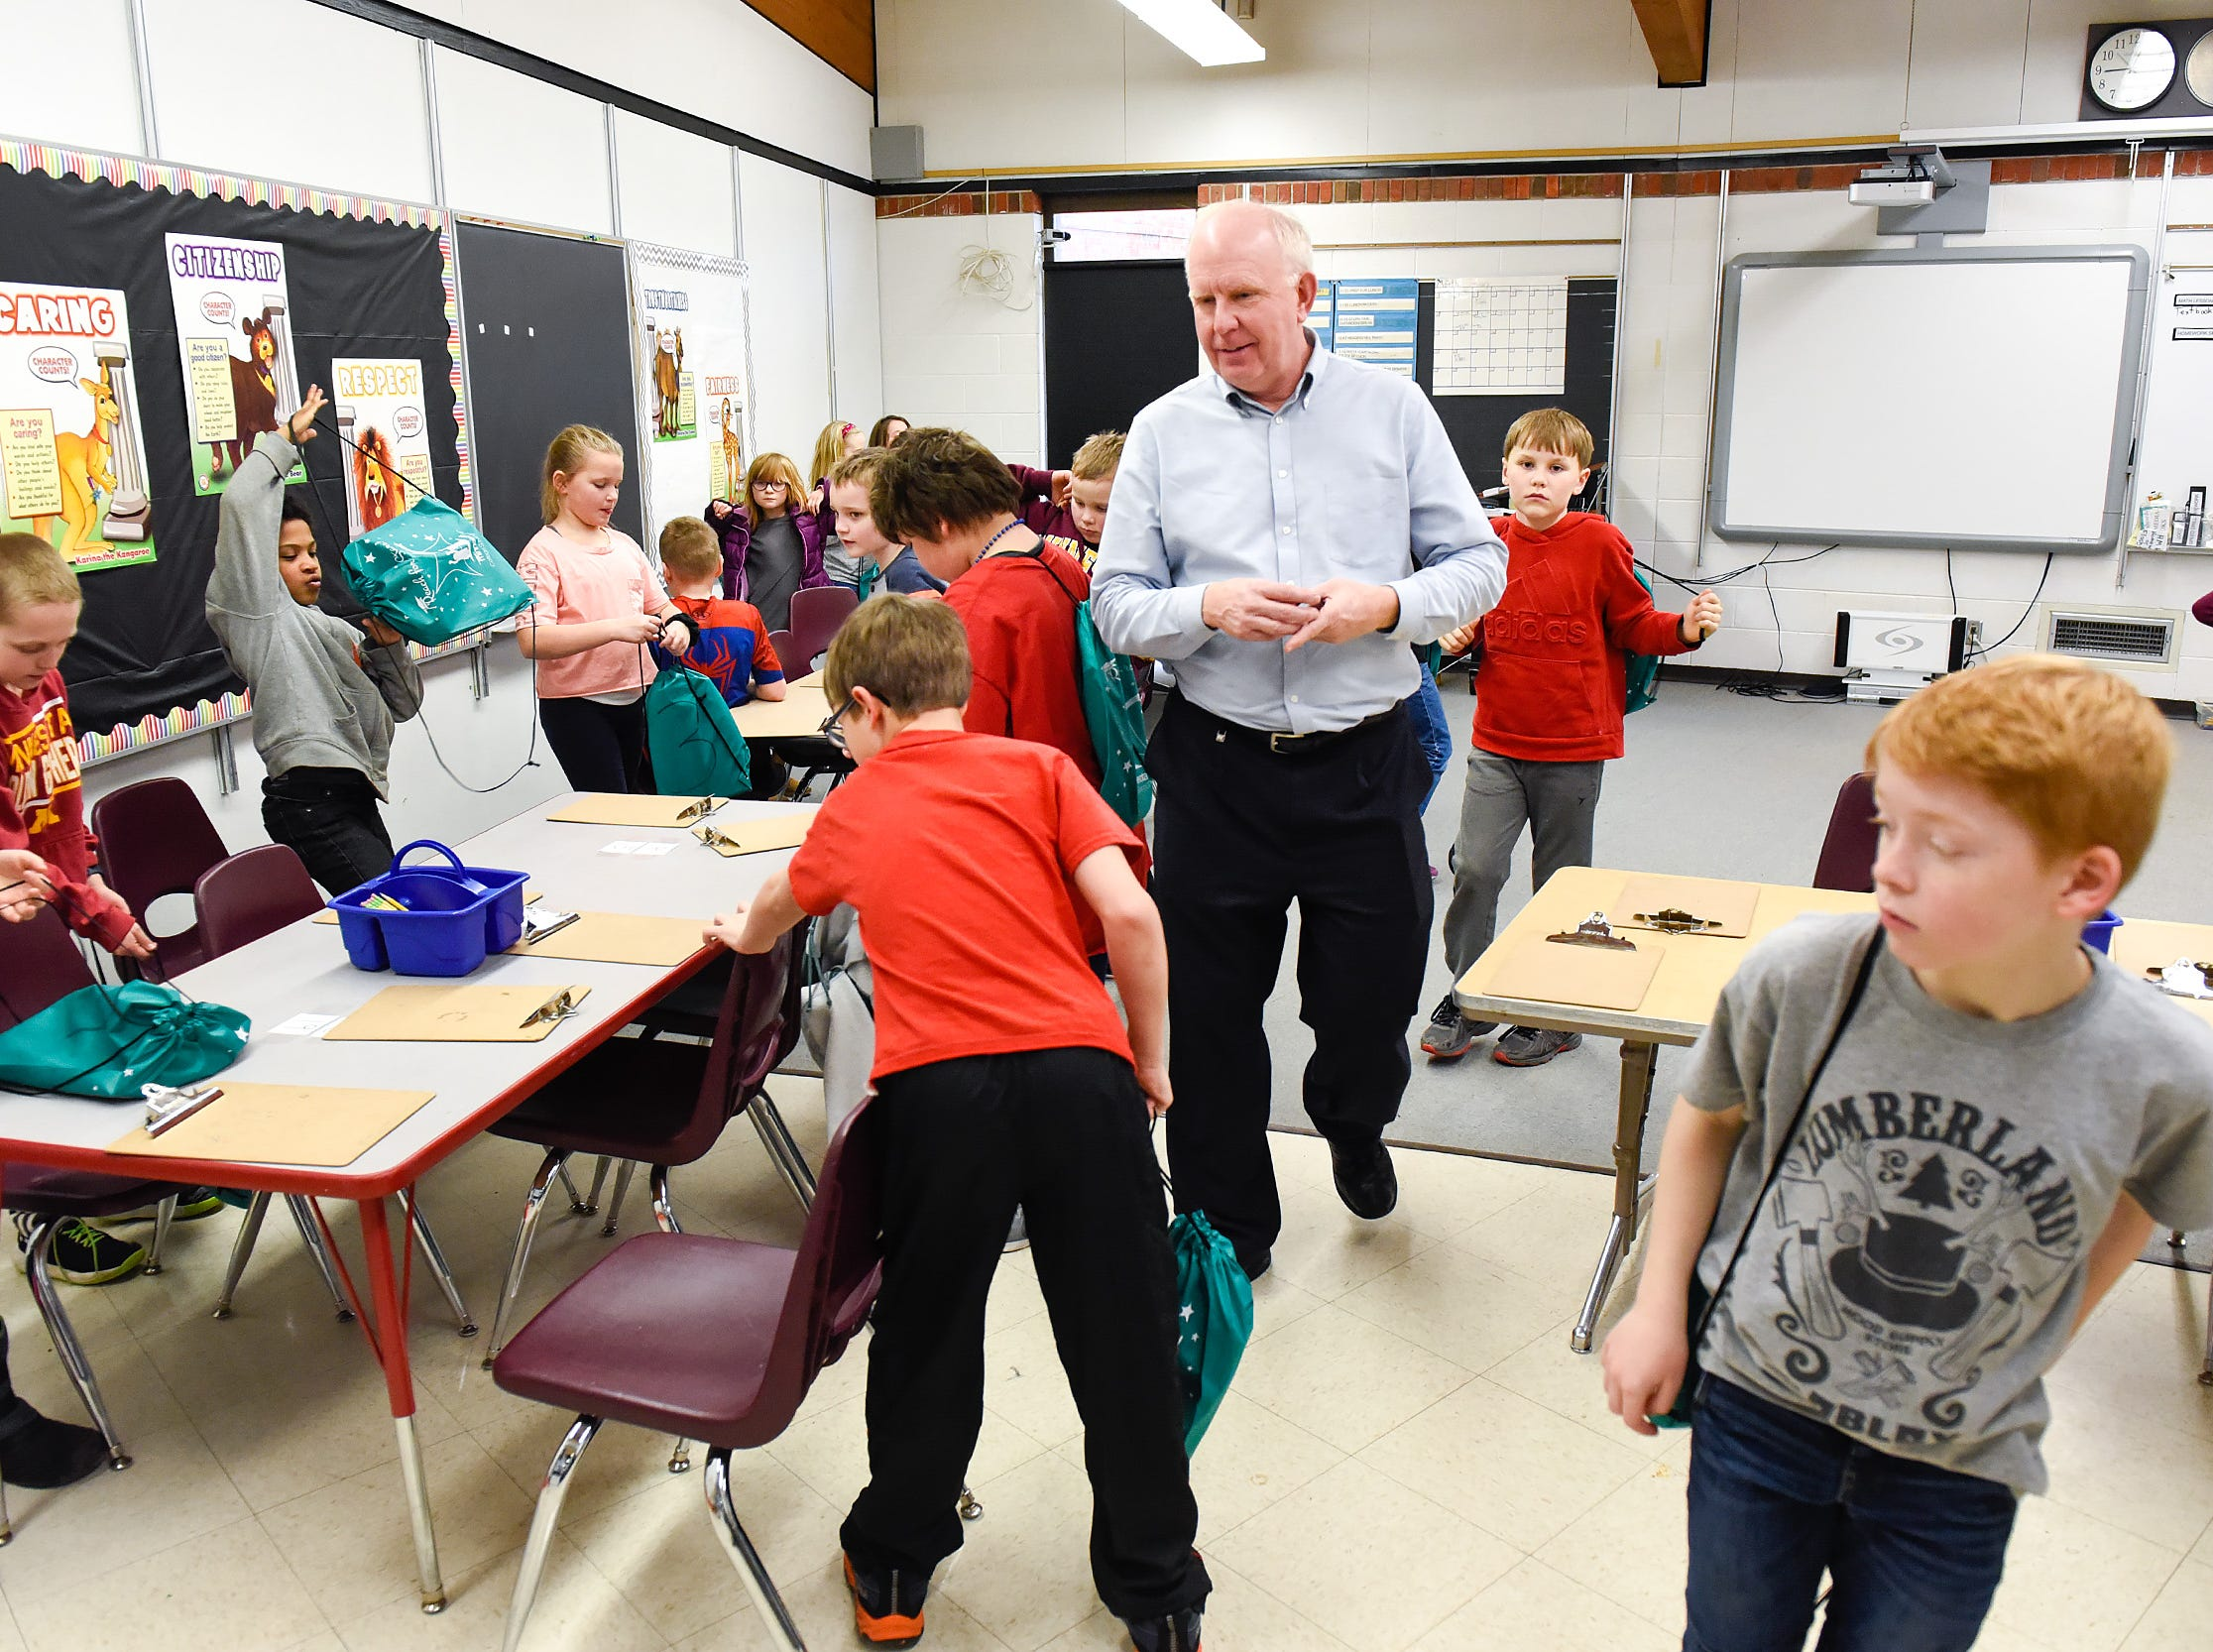 Teacher Brad Olson gets his class settled into their new classroom area Tuesday, Jan. 15, after a fire damaged classrooms at Pleasantview Elementary School in Sauk Rapids.